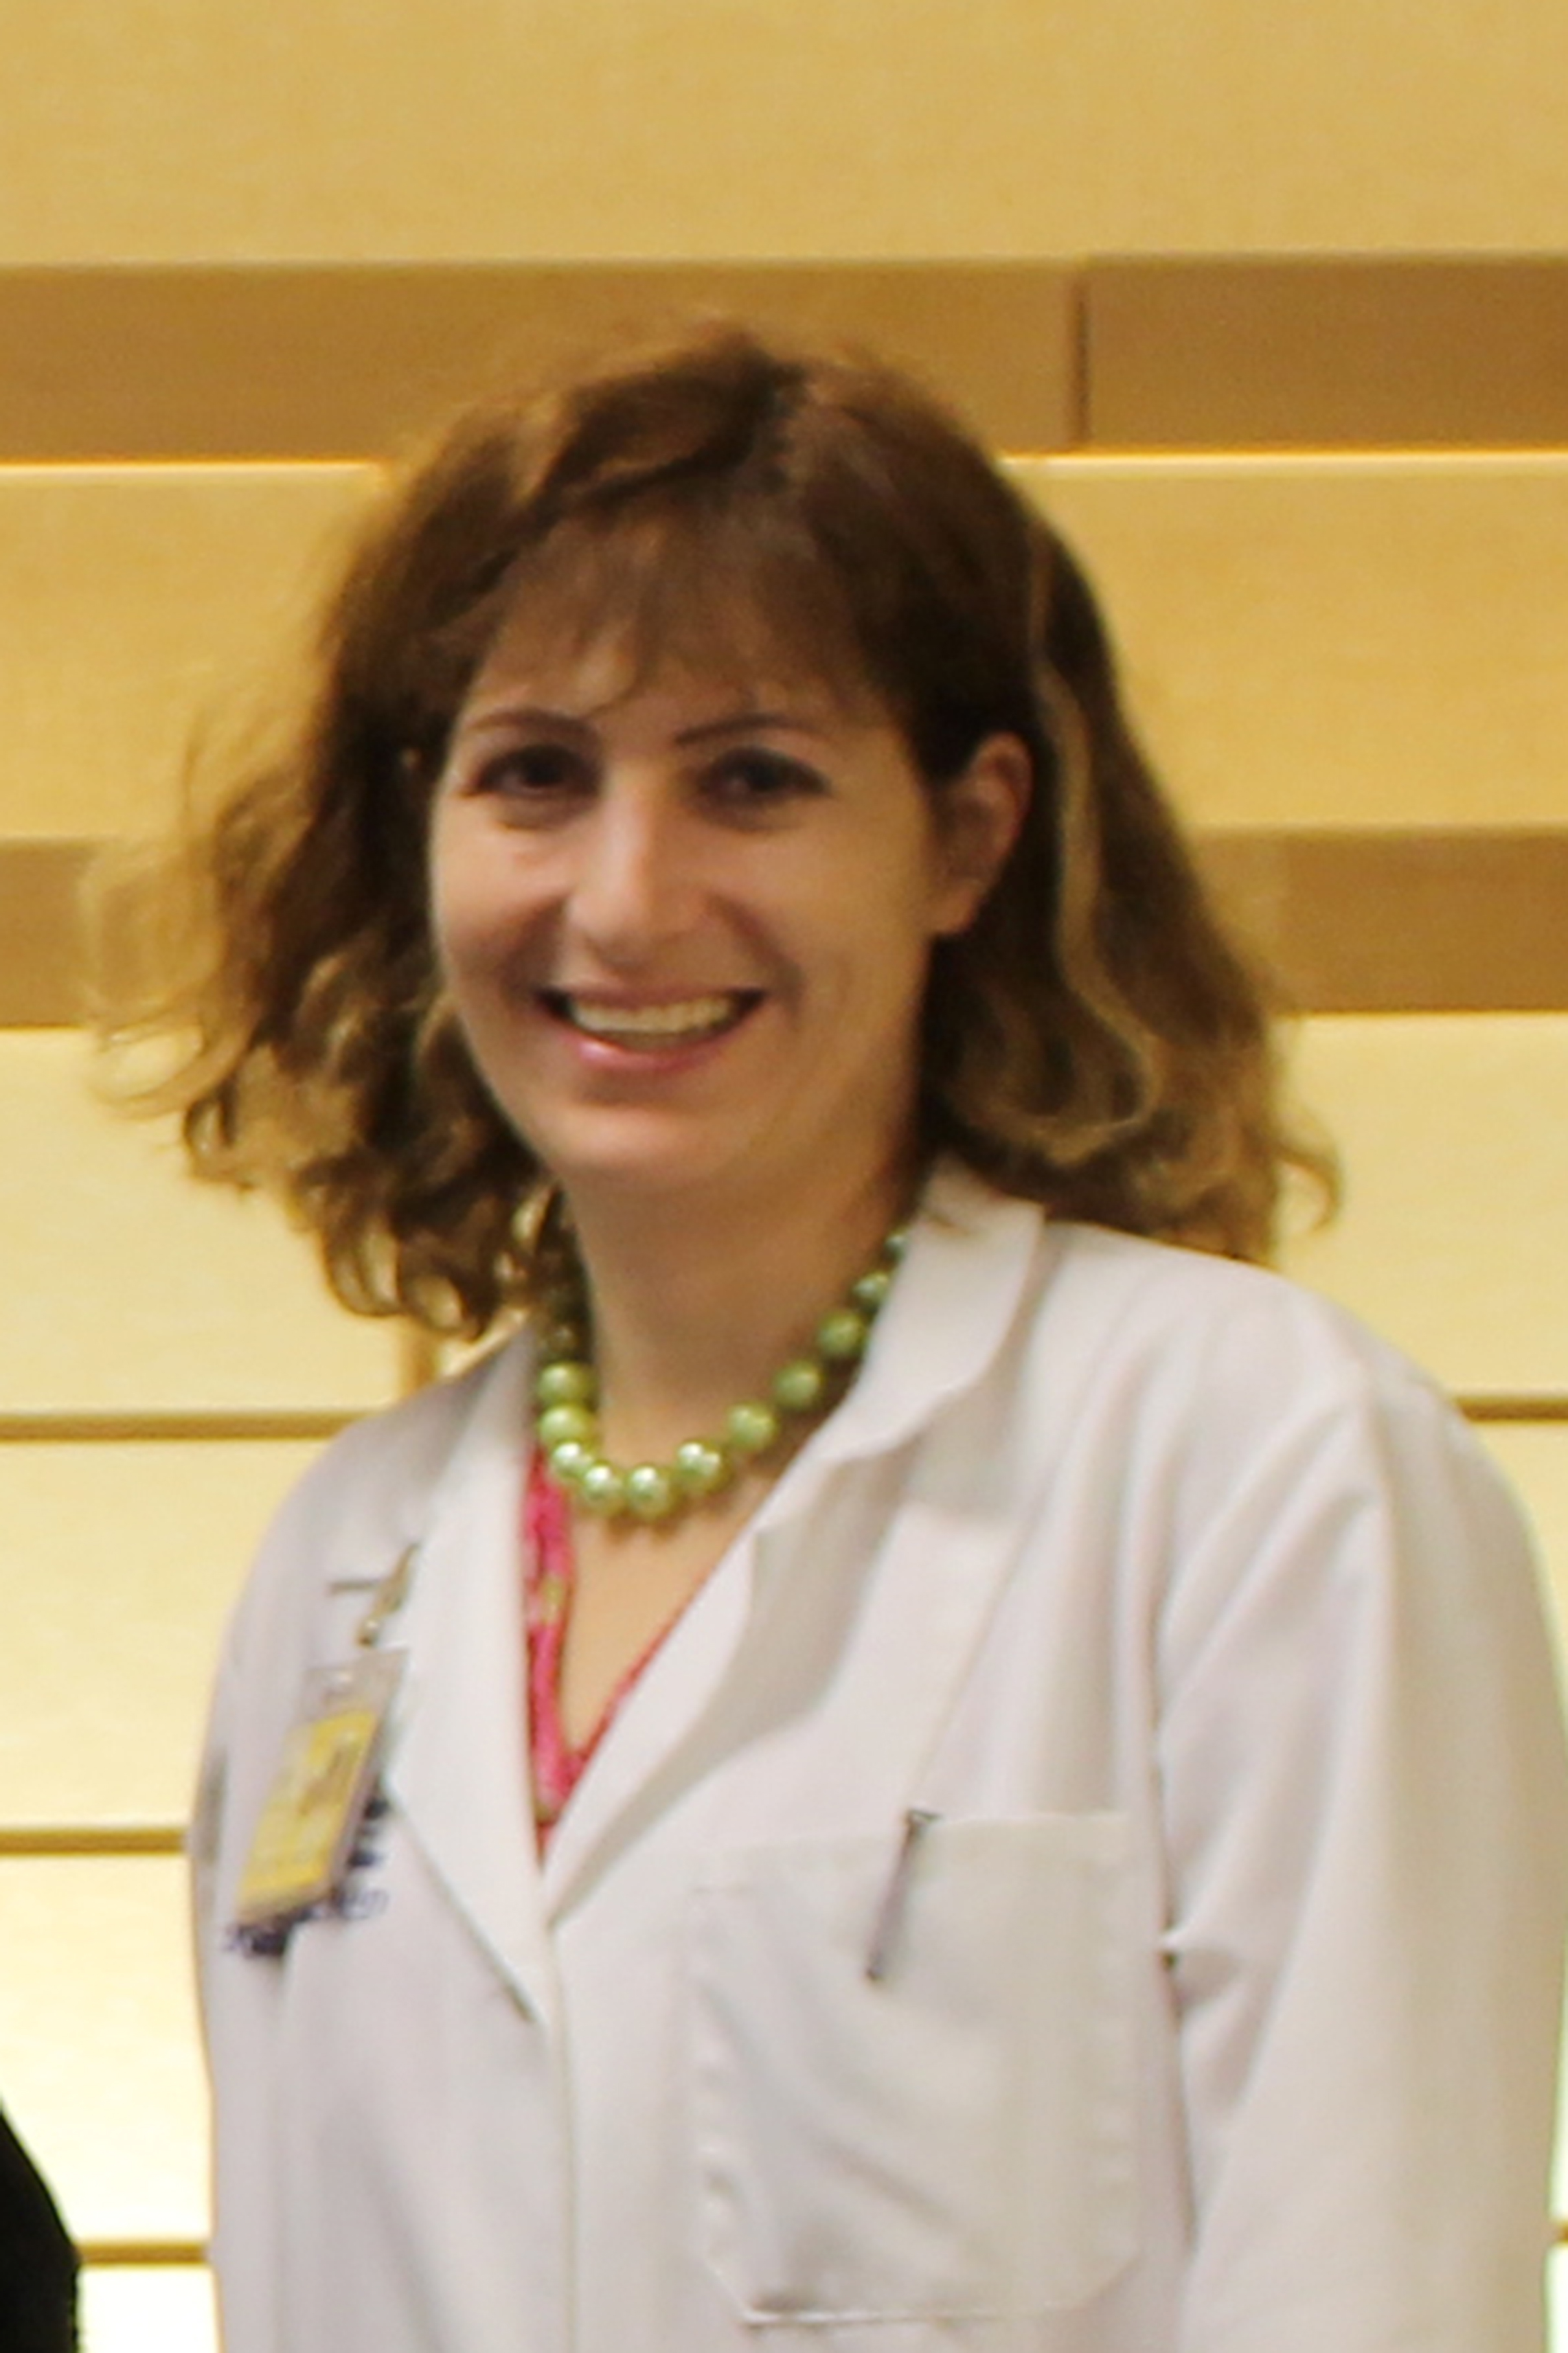 Photo of Katherine J. Gold, associate professor of Family Medicine and Obstetrics and Gynecology with the University of Michigan.